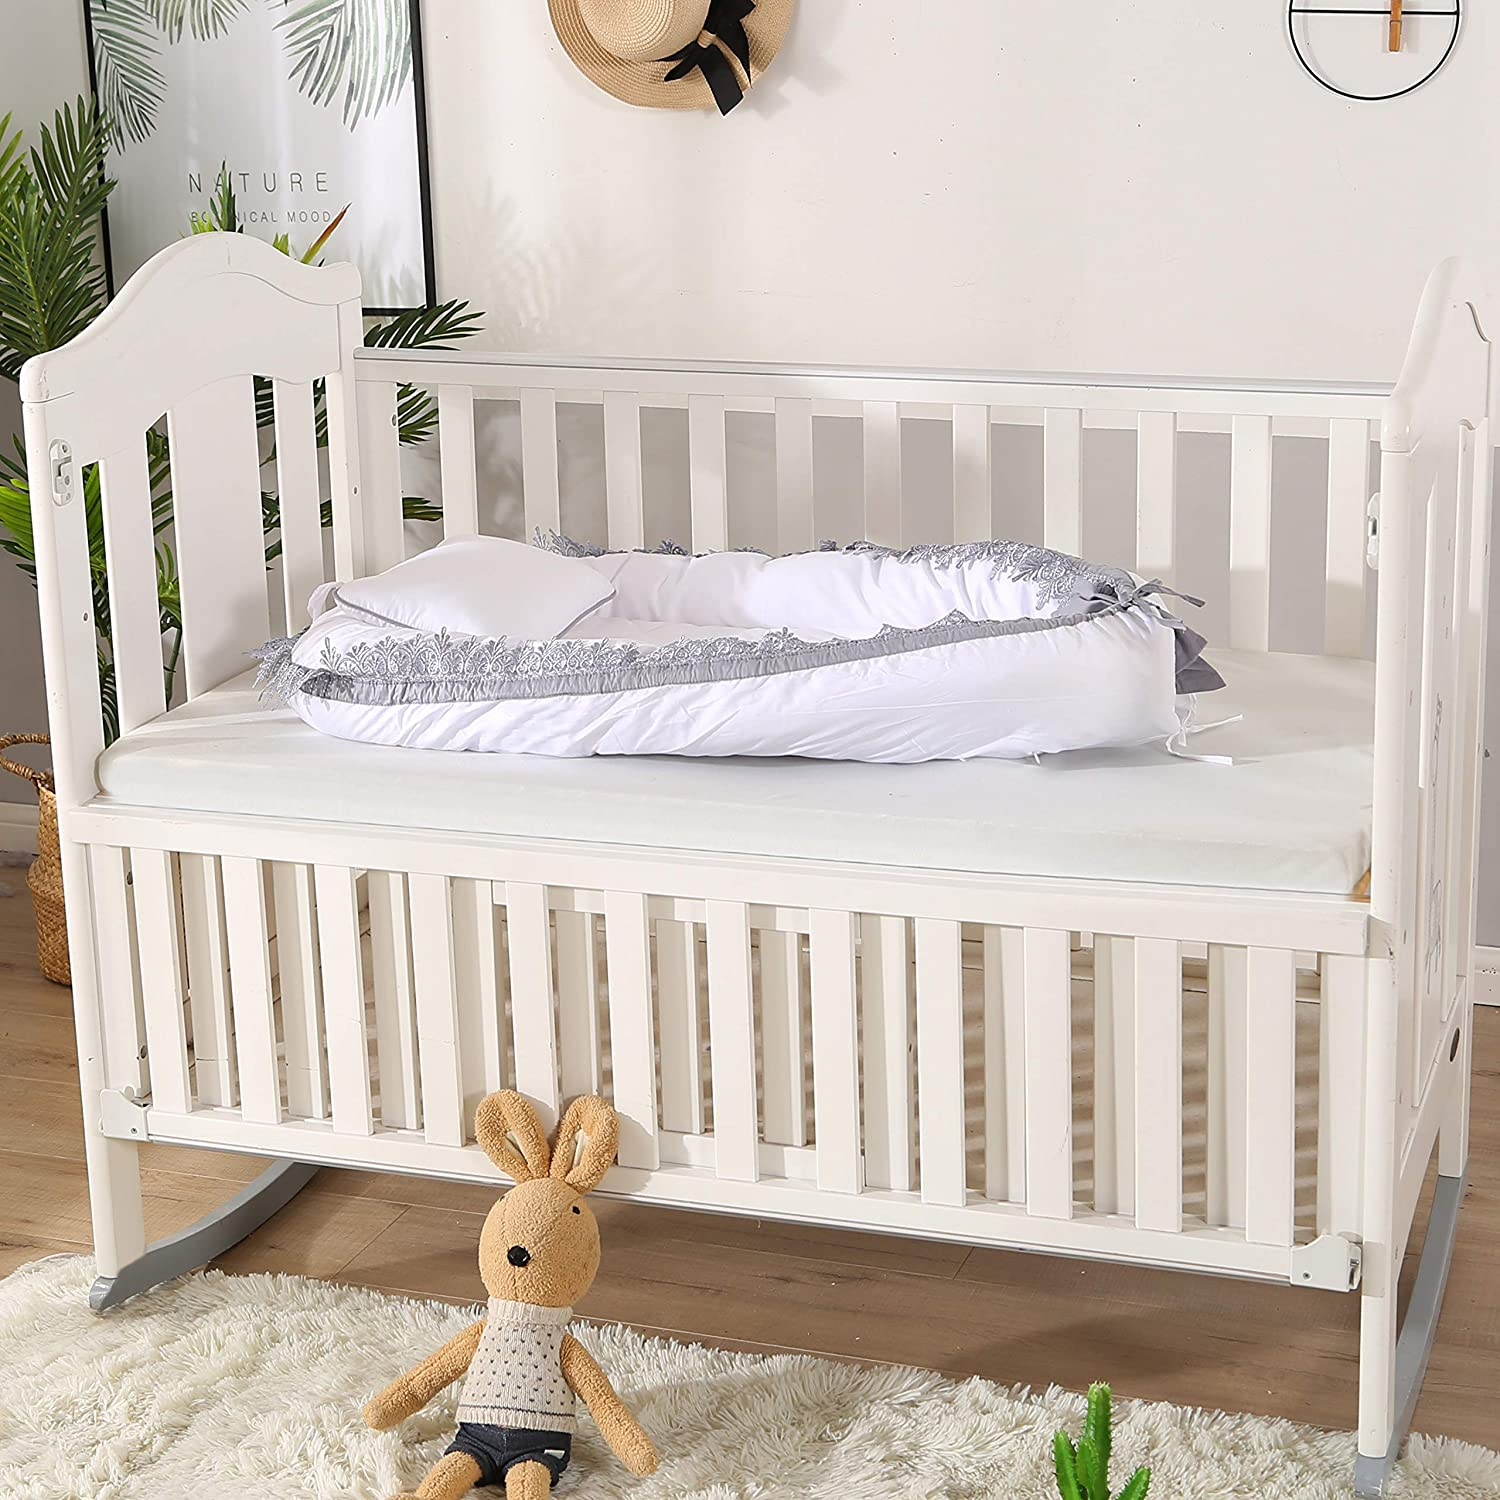 Portable Baby Lounger for Bed 100/% Cotton Newborn Portable Bassinet Cribs Breathable and Hypoallergenic for Newborn 4-Pieces